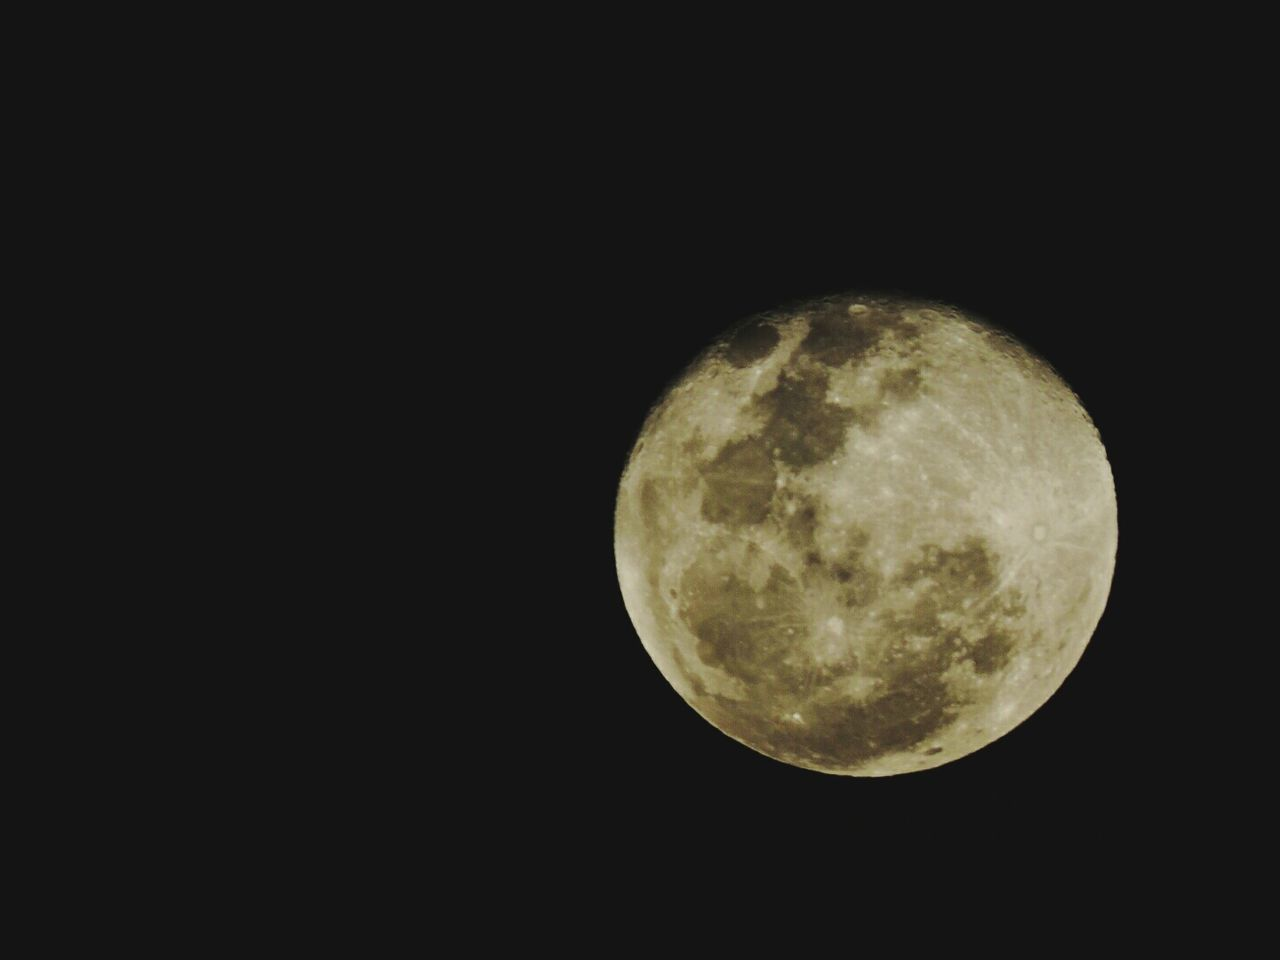 moon, night, moon surface, planetary moon, astronomy, beauty in nature, nature, tranquility, copy space, scenics, no people, tranquil scene, low angle view, outdoors, space exploration, close-up, space, clear sky, sky, satellite view